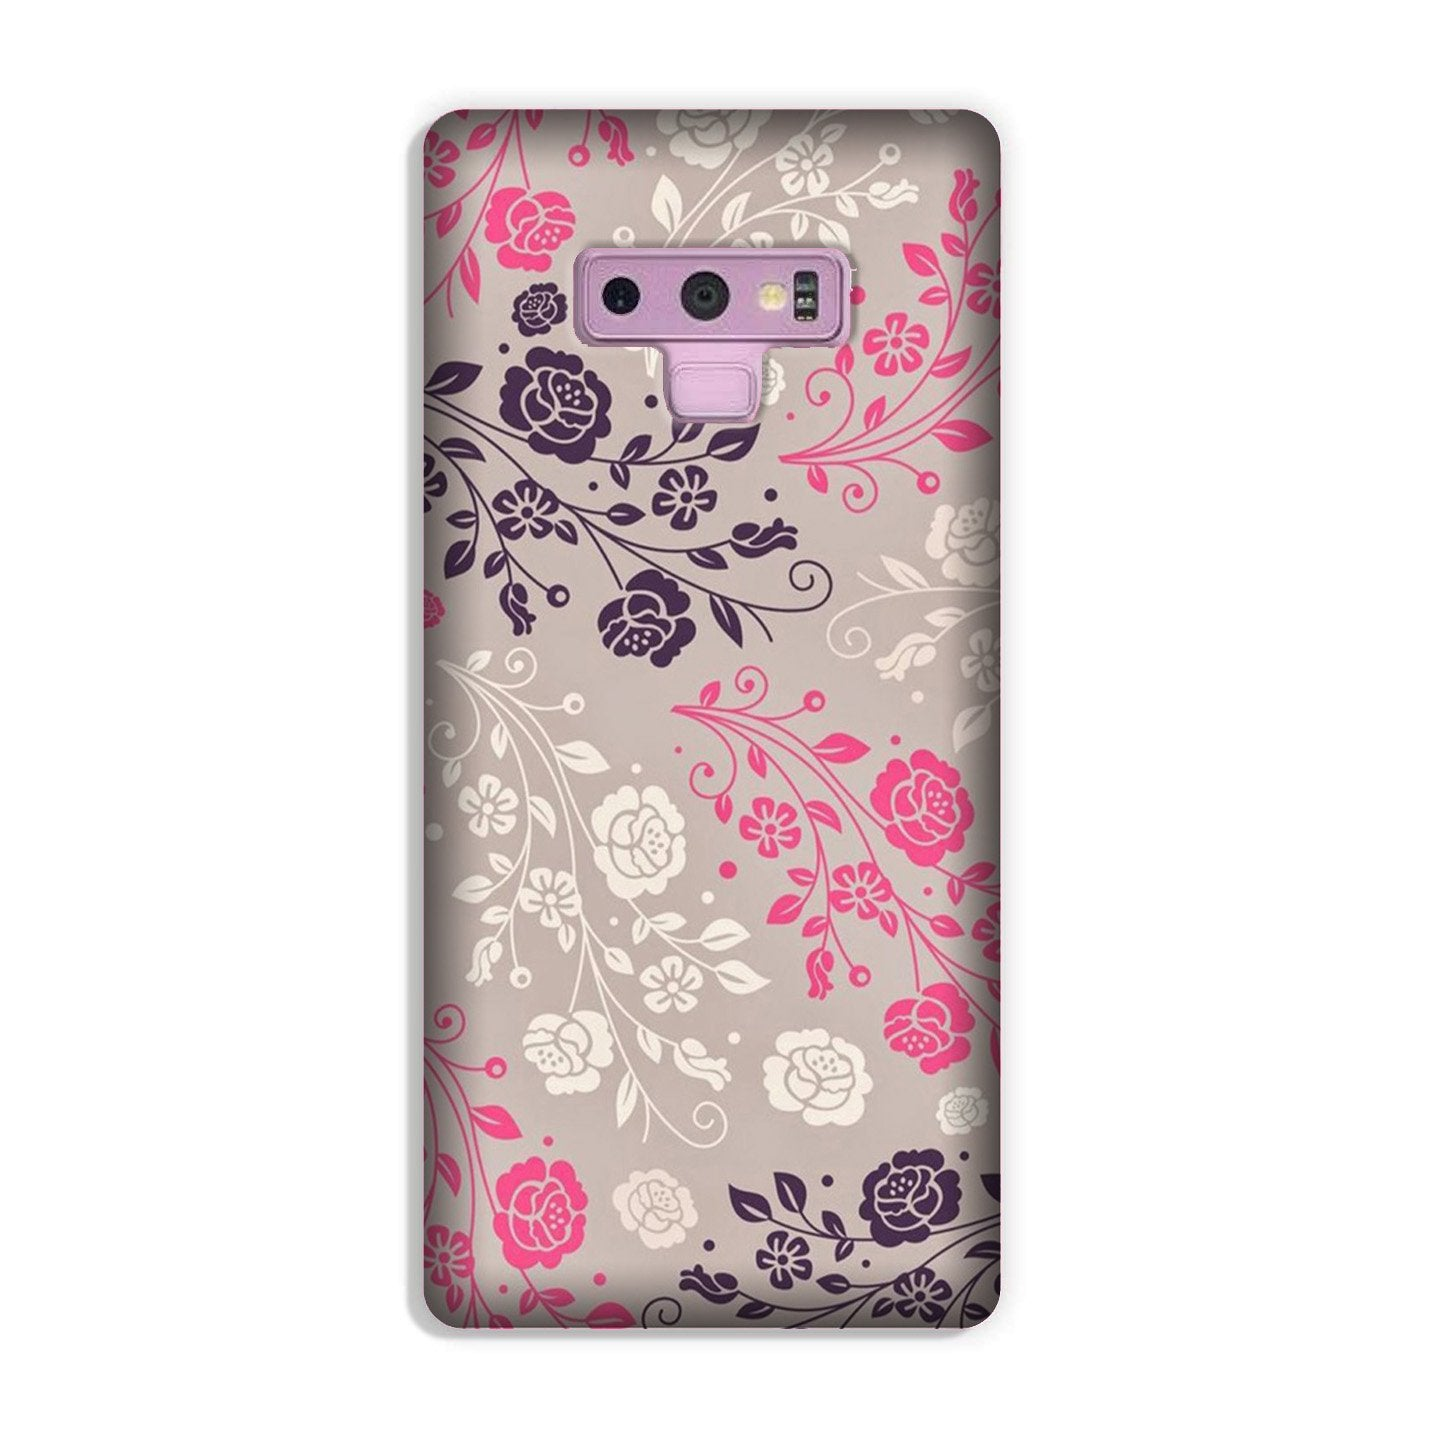 Pattern2 Case for Galaxy Note 9